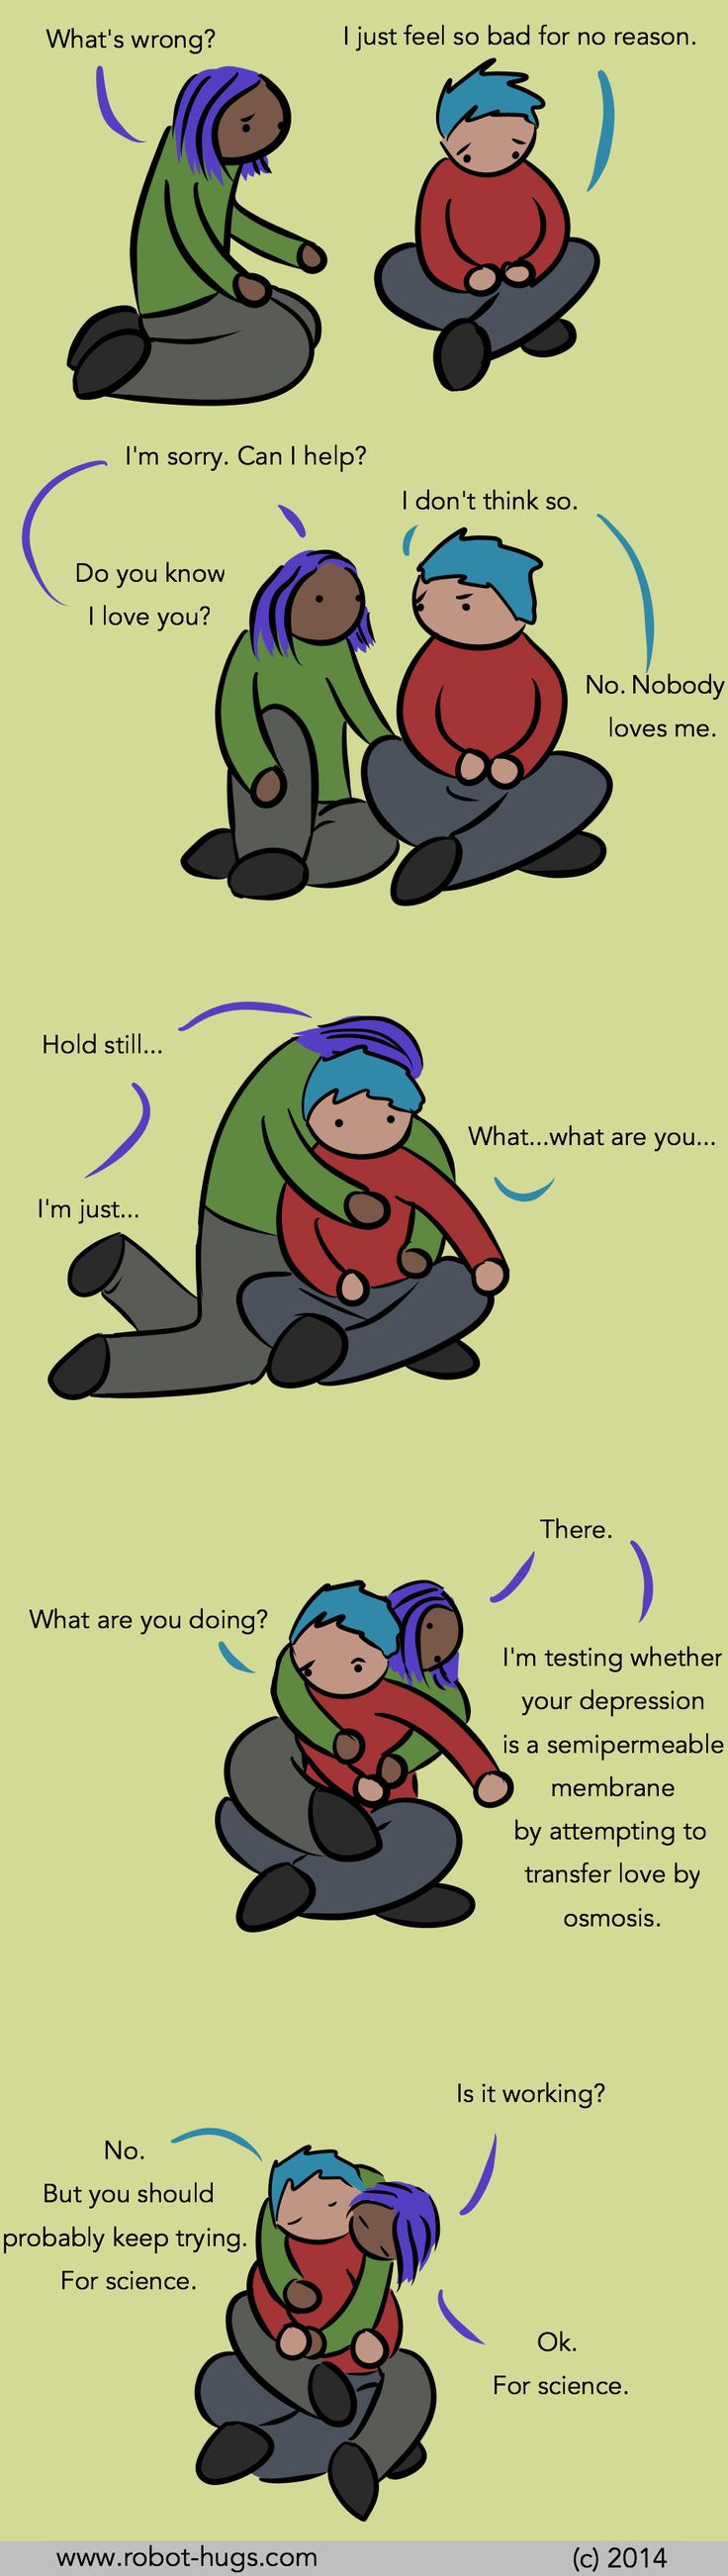 Hugs help squash depression, don't you know.